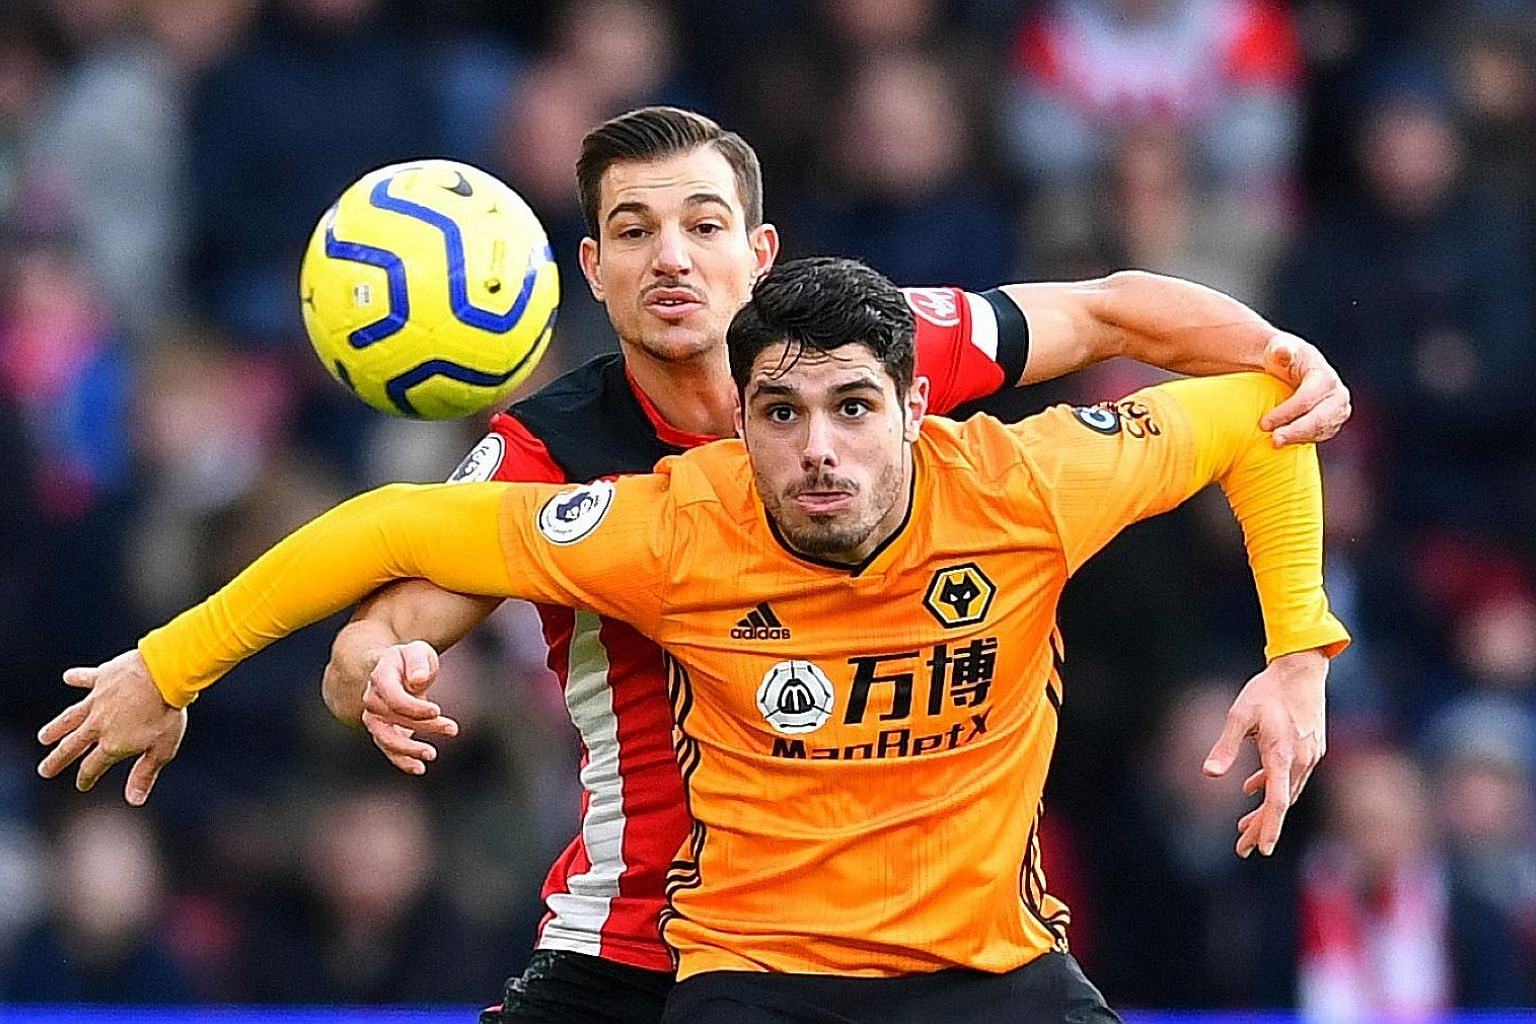 Wolves' Pedro Neto shielding the ball from Southampton's Cedric Soares during Wolves' 3-2 Premier League victory last Saturday. Sixth-placed Wolves have only five league losses so far. PHOTO: REUTERS